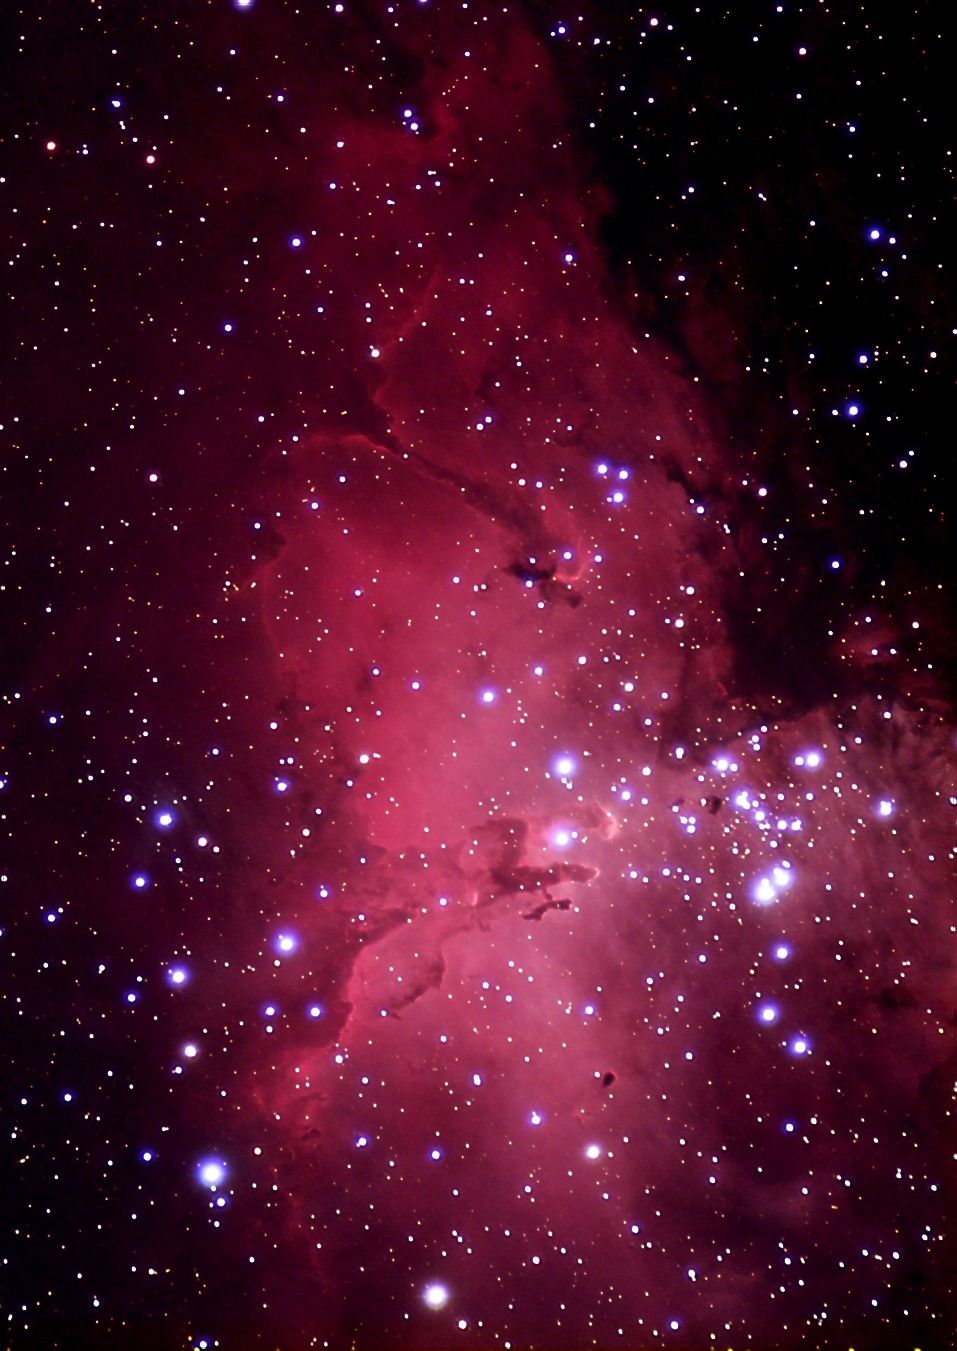 The Wine Had Gone To My Head Or Was It The Night Itself The Sweetness At The End Of Summer Louise Gluck From With Images Nebula Space Images Eagle Nebula